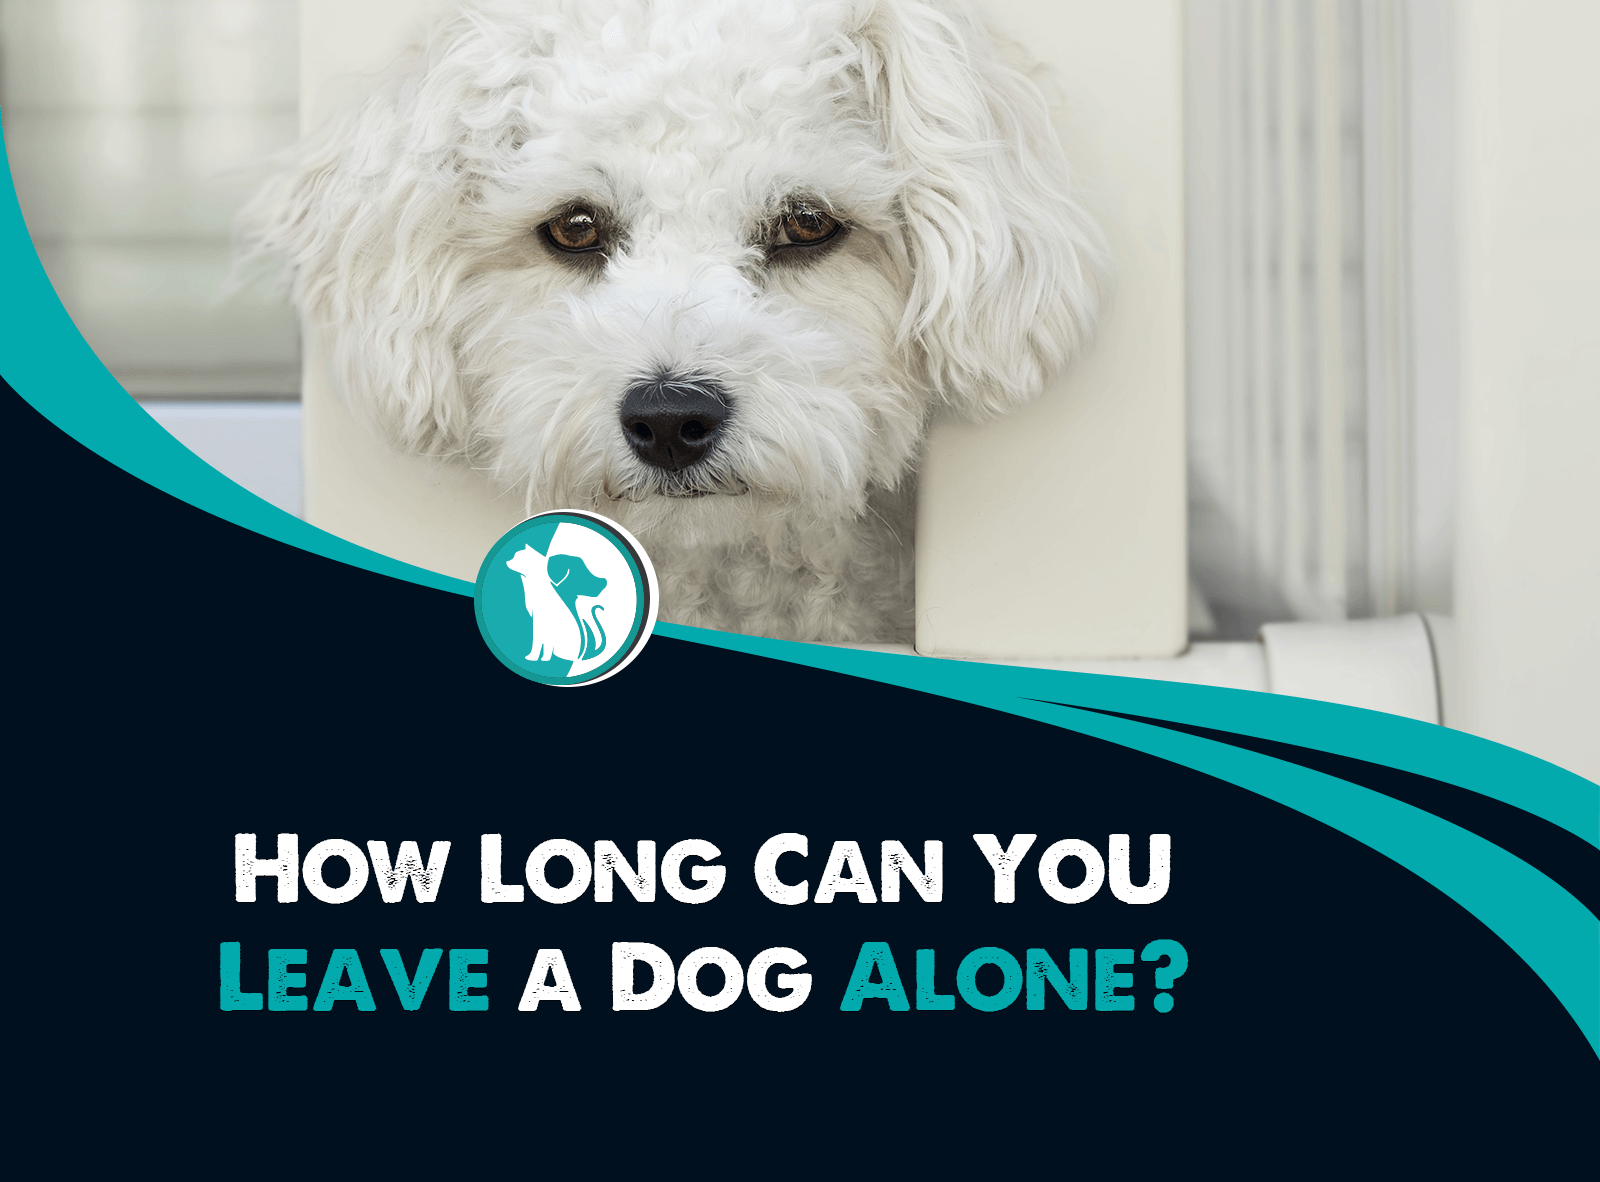 How Long Can You Leave a Dog Alone?